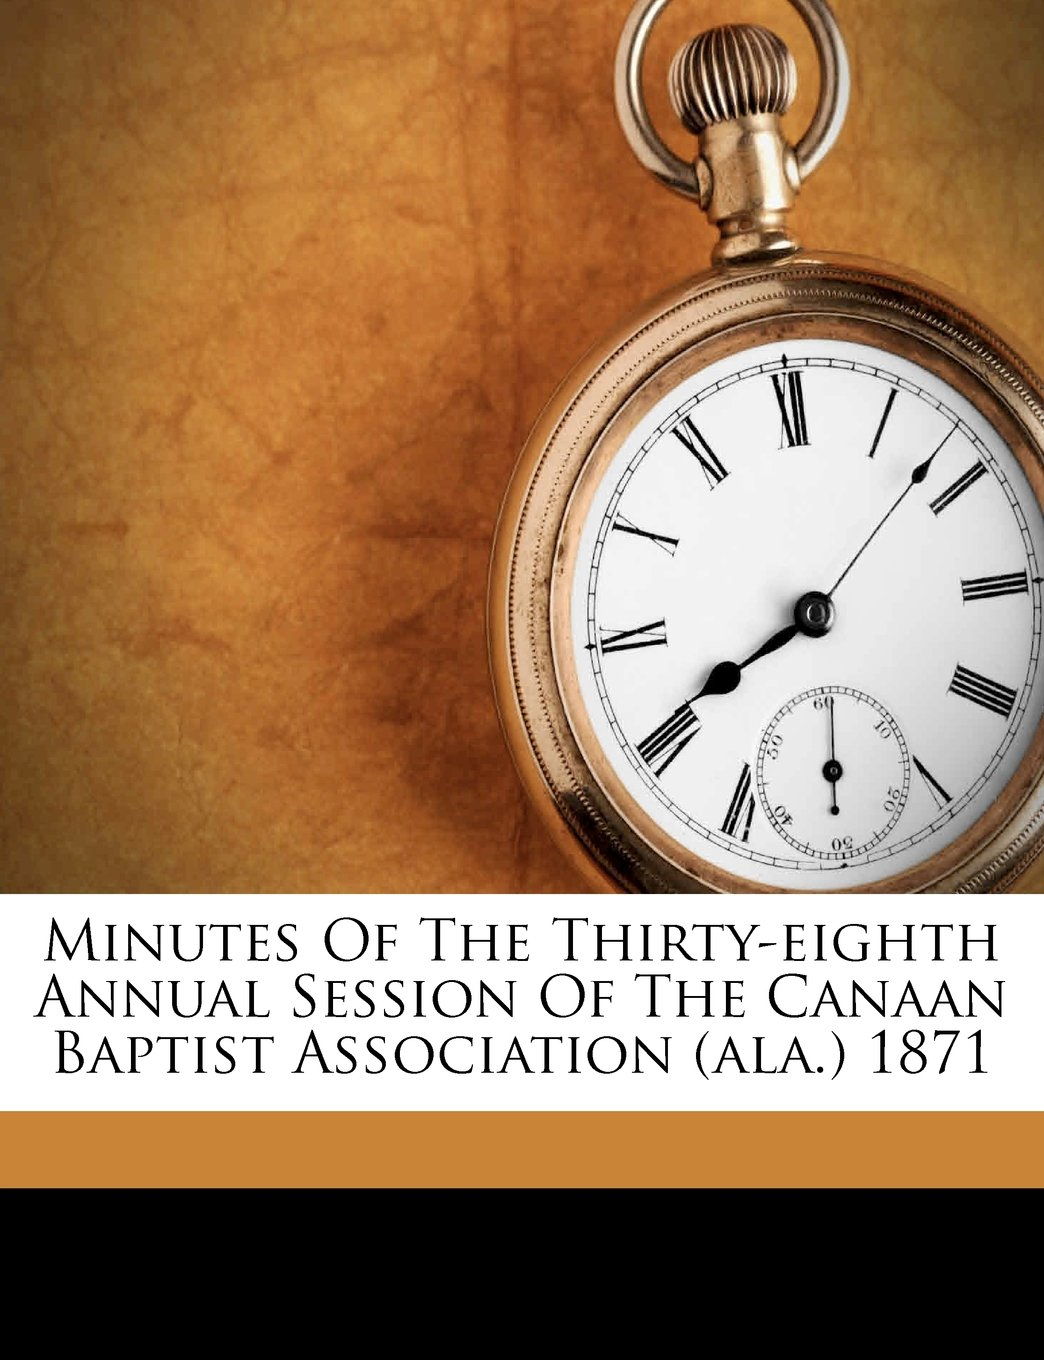 Minutes Of The Thirty-eighth Annual Session Of The Canaan Baptist Association (ala.) 1871 ebook